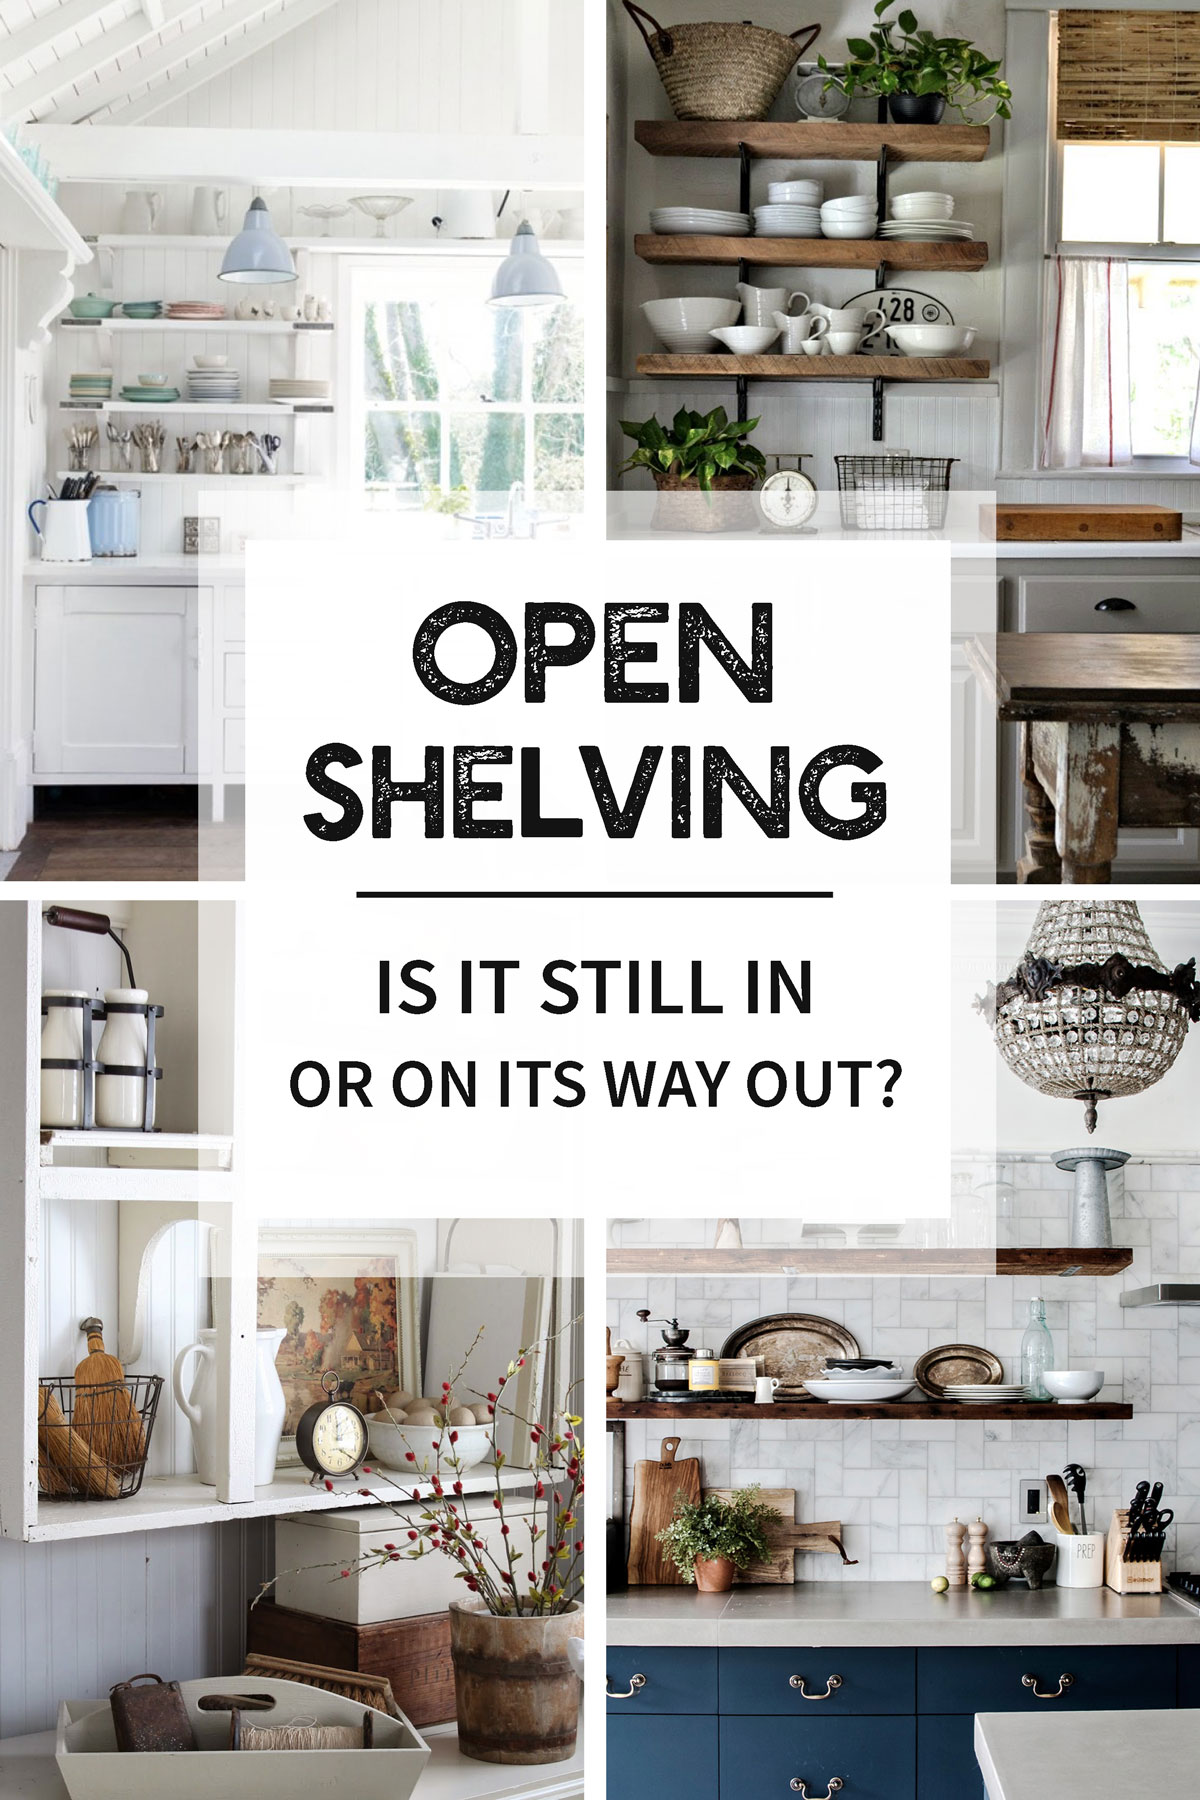 open shelving still its way out tidbits floating shelves over kitchen island compelling opinions barn wood furniture pine corner unit lack ikea bathroom drawers garage workbench